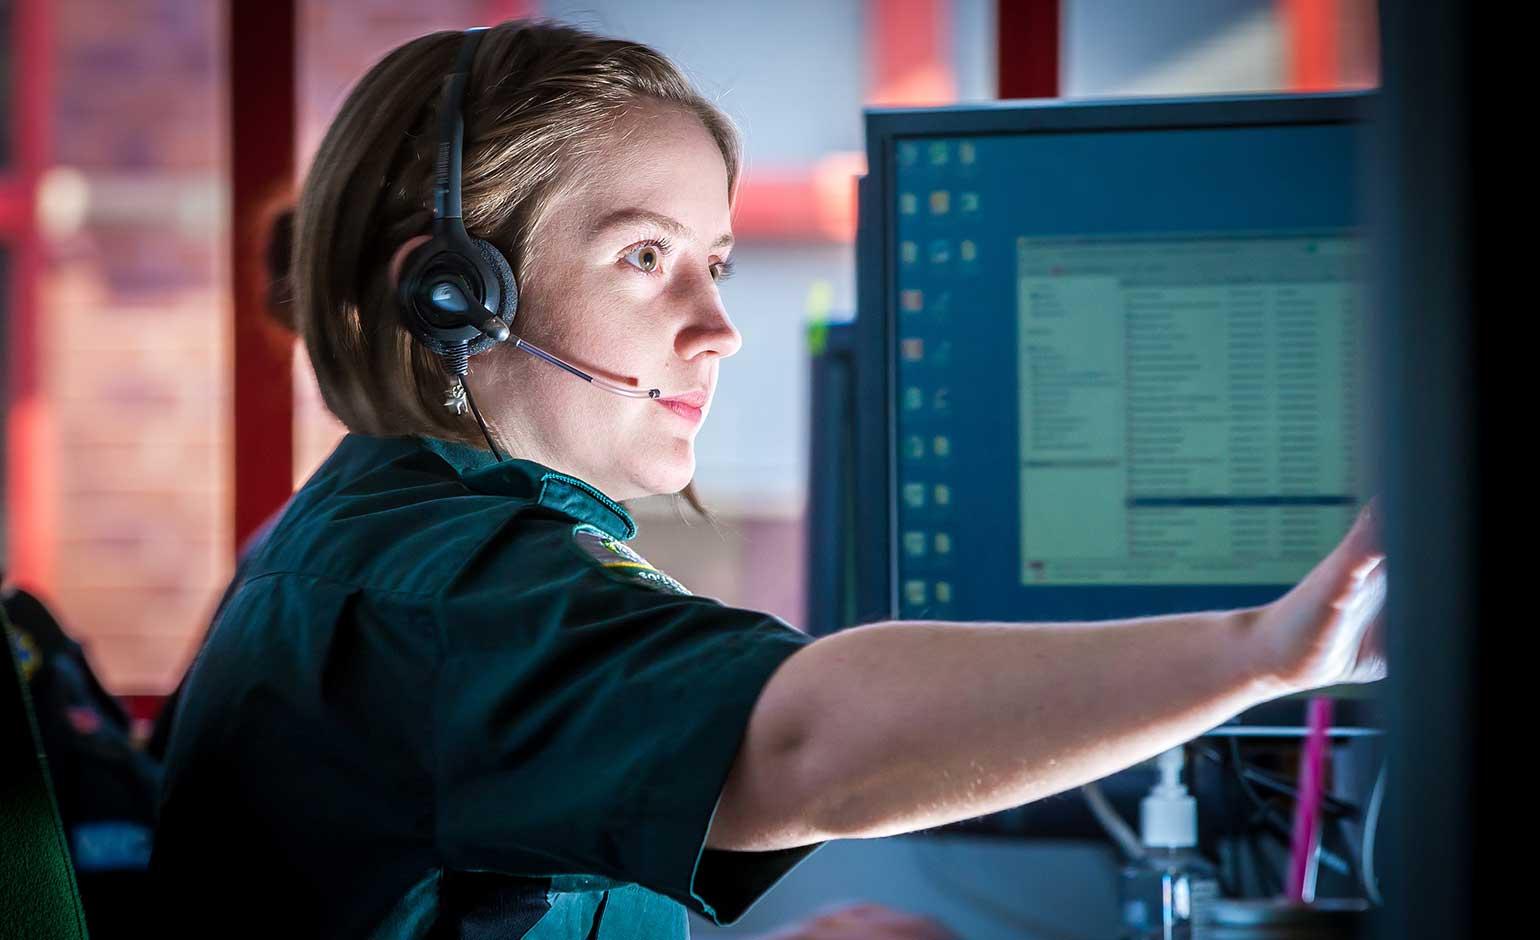 Smartphone tech helps ambulance service reach patients virtually